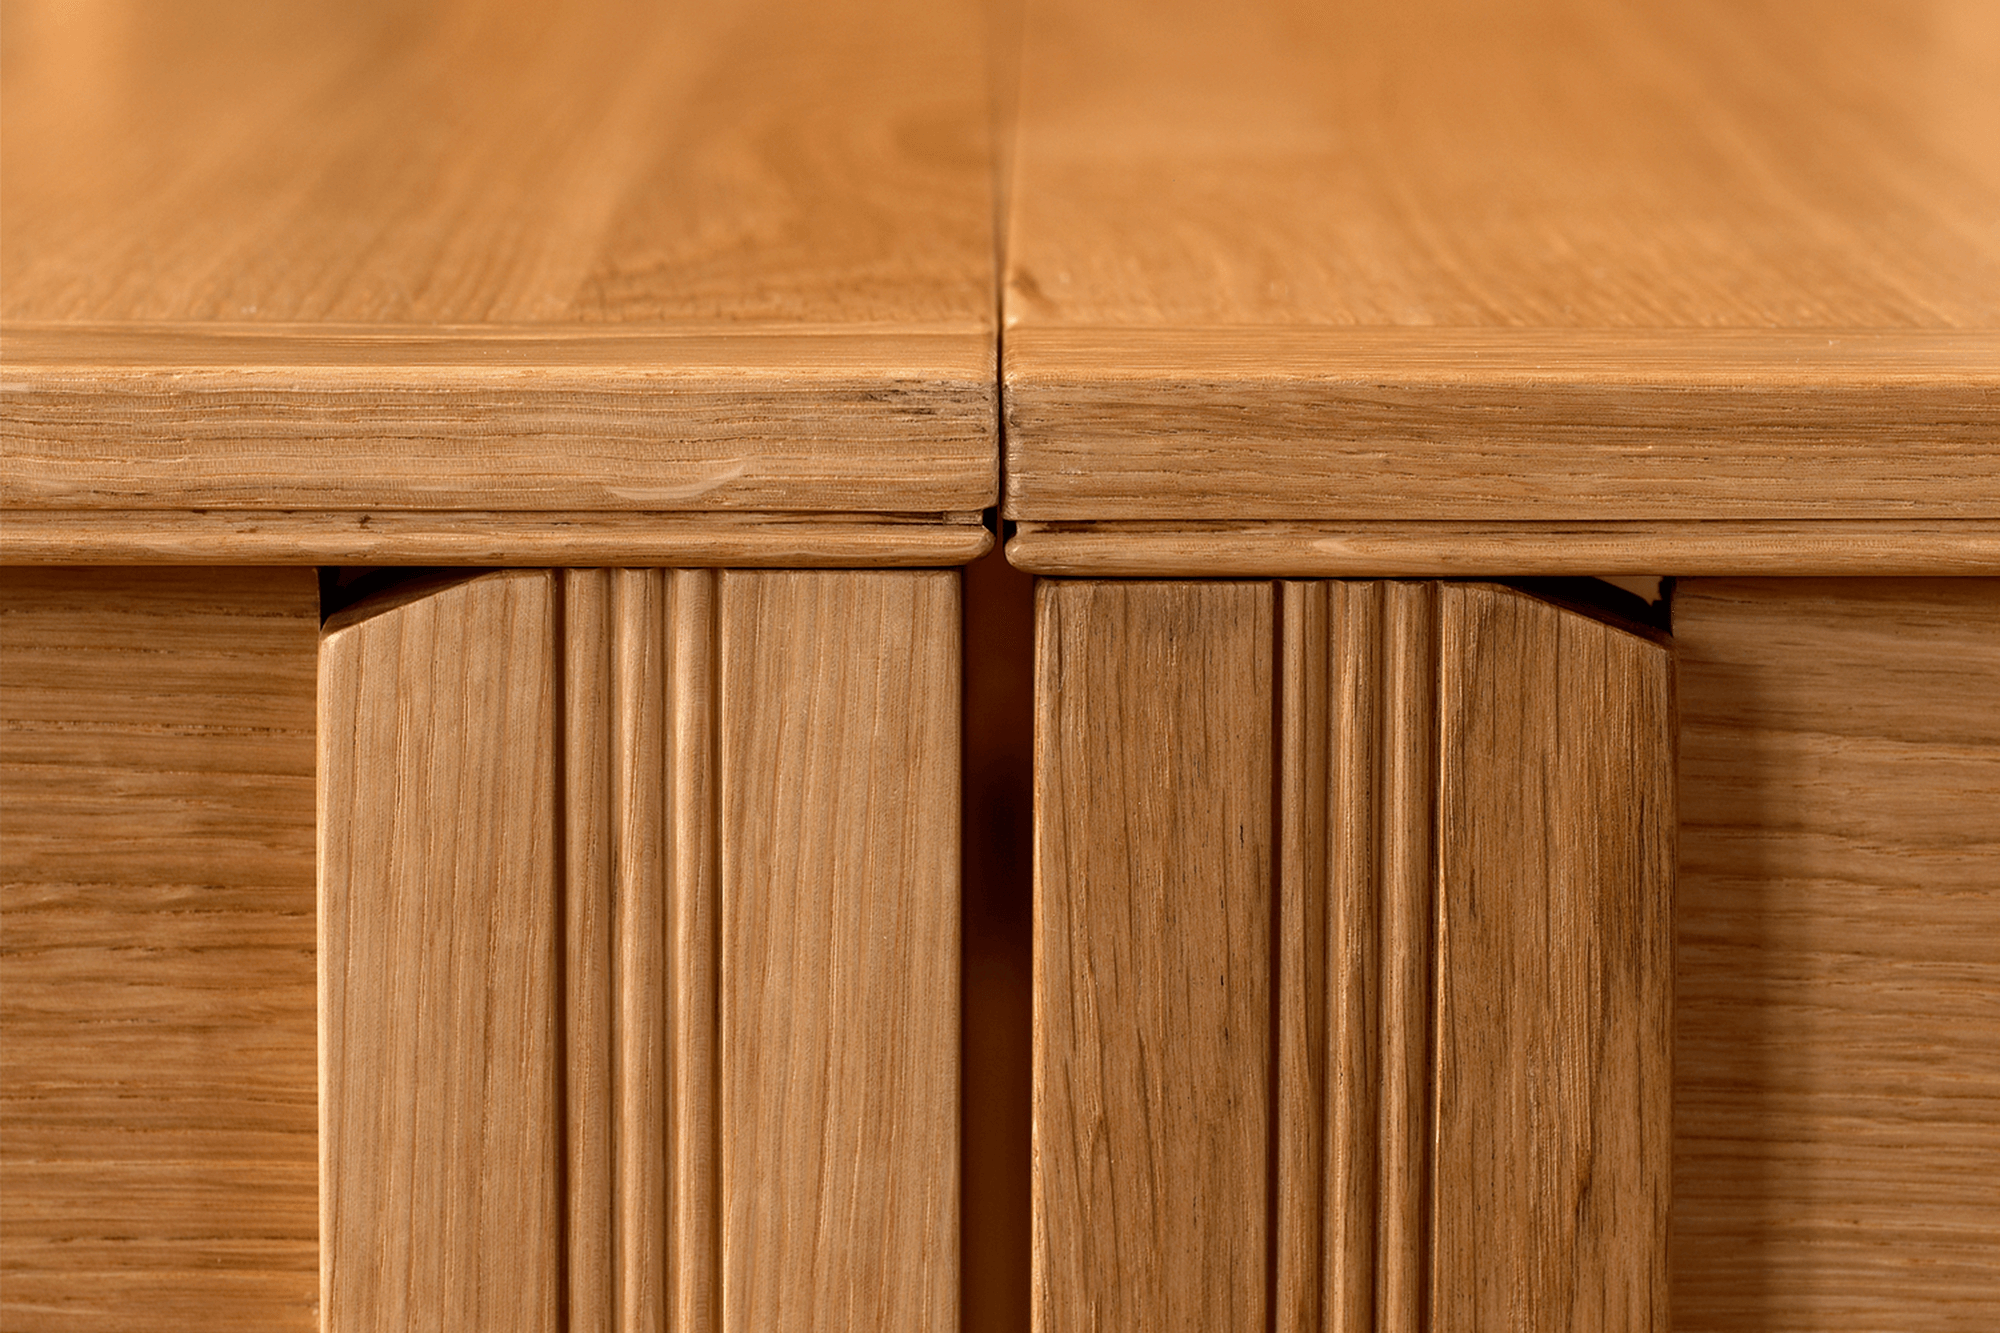 Minerva D-end timber table image 1